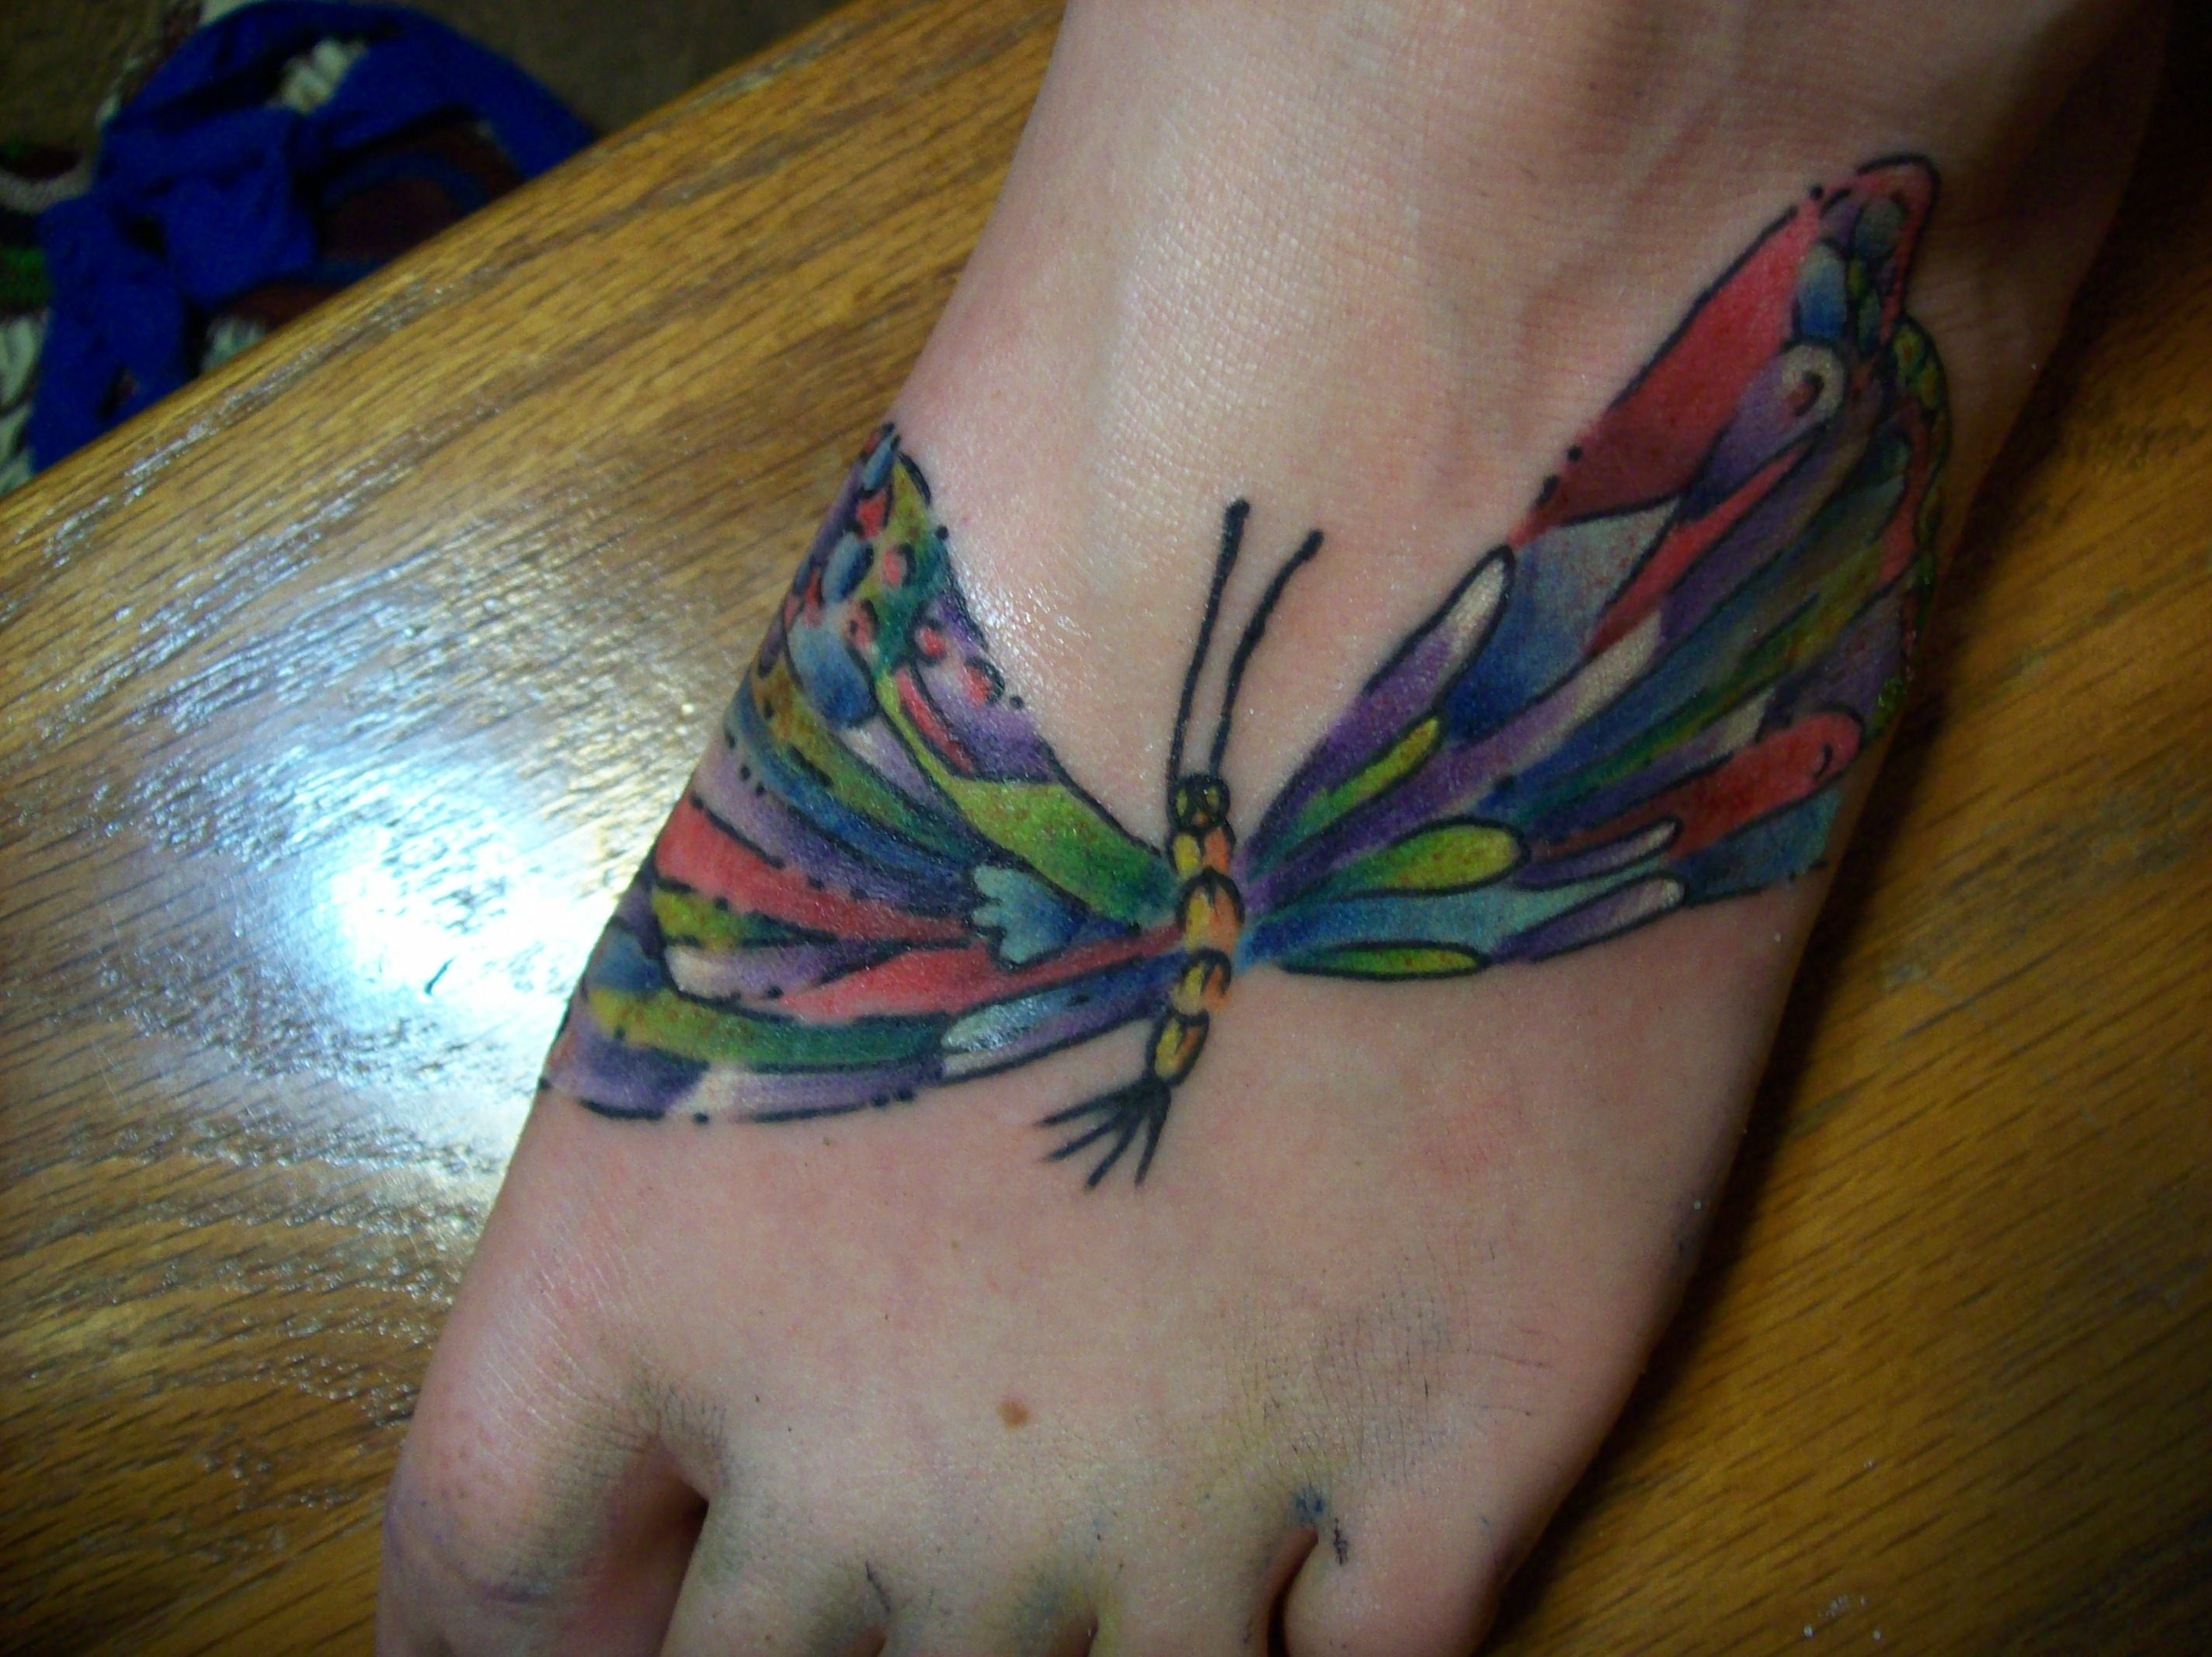 The Hungry Caterpillar Butterfly Tattoo By Sn4ckb4r On Deviantart Butterfly Tattoo Tattoos Caterpillar Tattoo